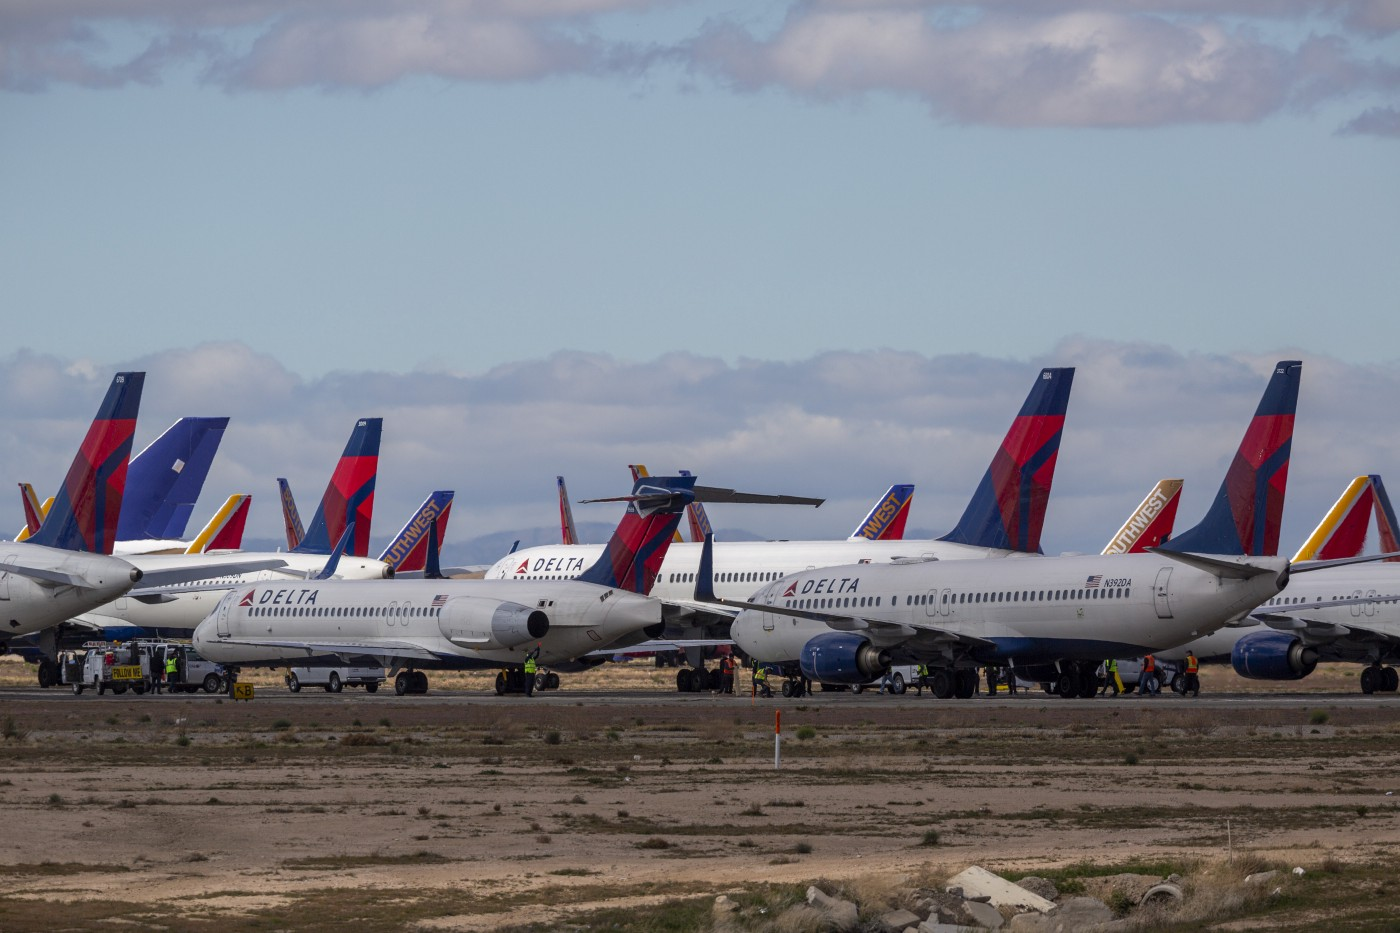 A fleet of Delta Airlines jets parked at the Southern California Logistics Airport (SCLA) due to decreased air travel.